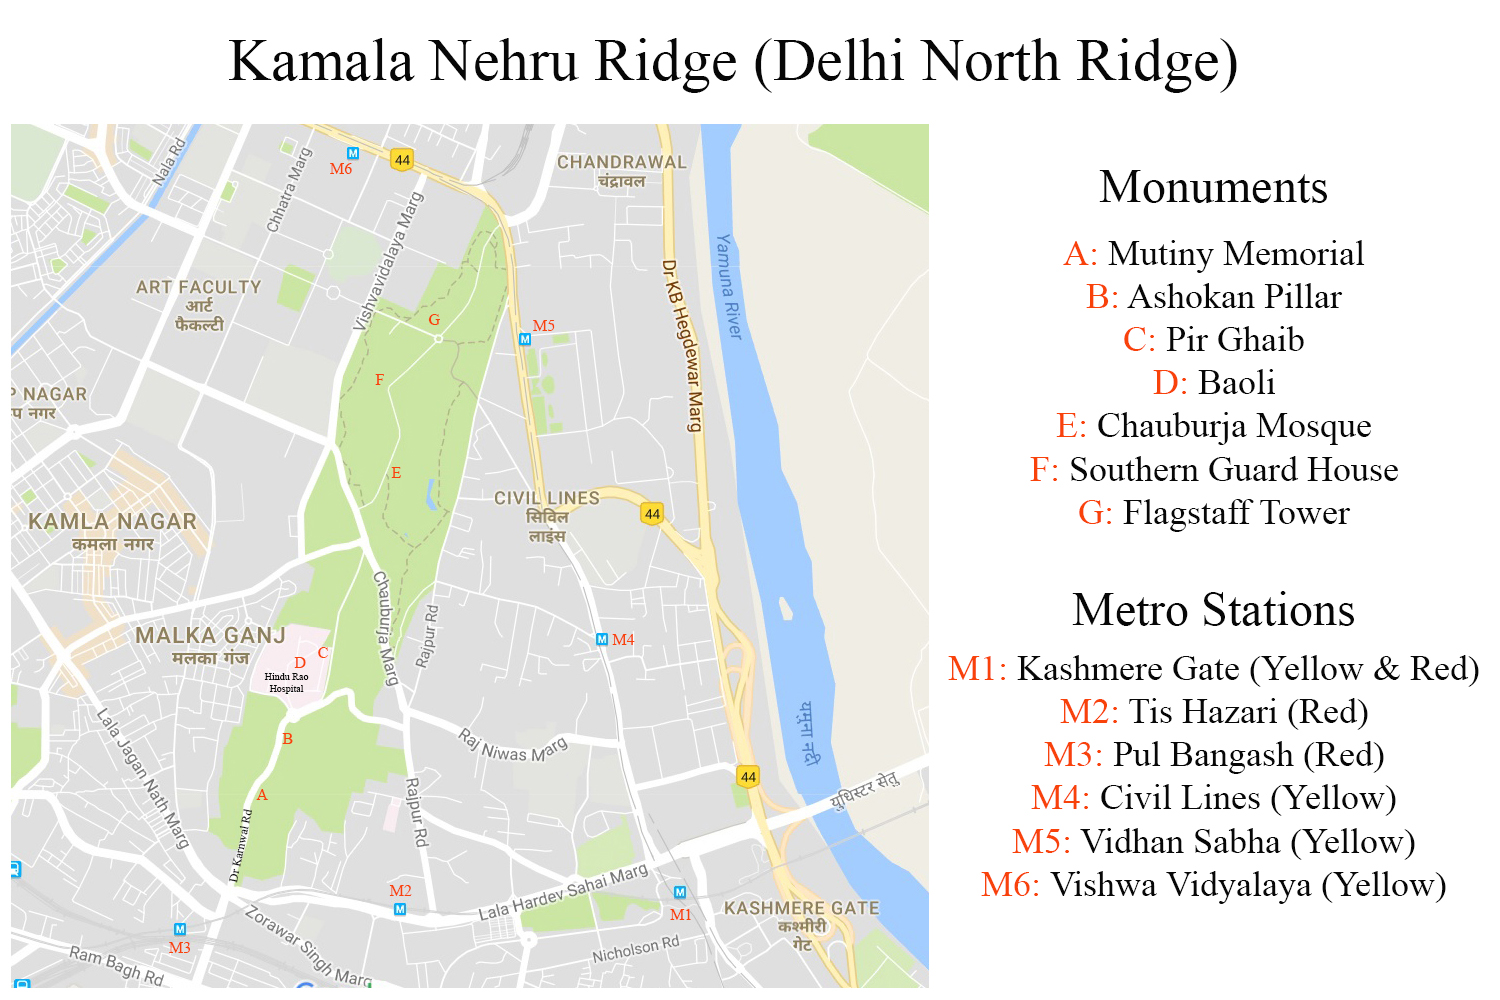 Kamala Nehru Ridge (Delhi Ridge) Map (click to enlarge)